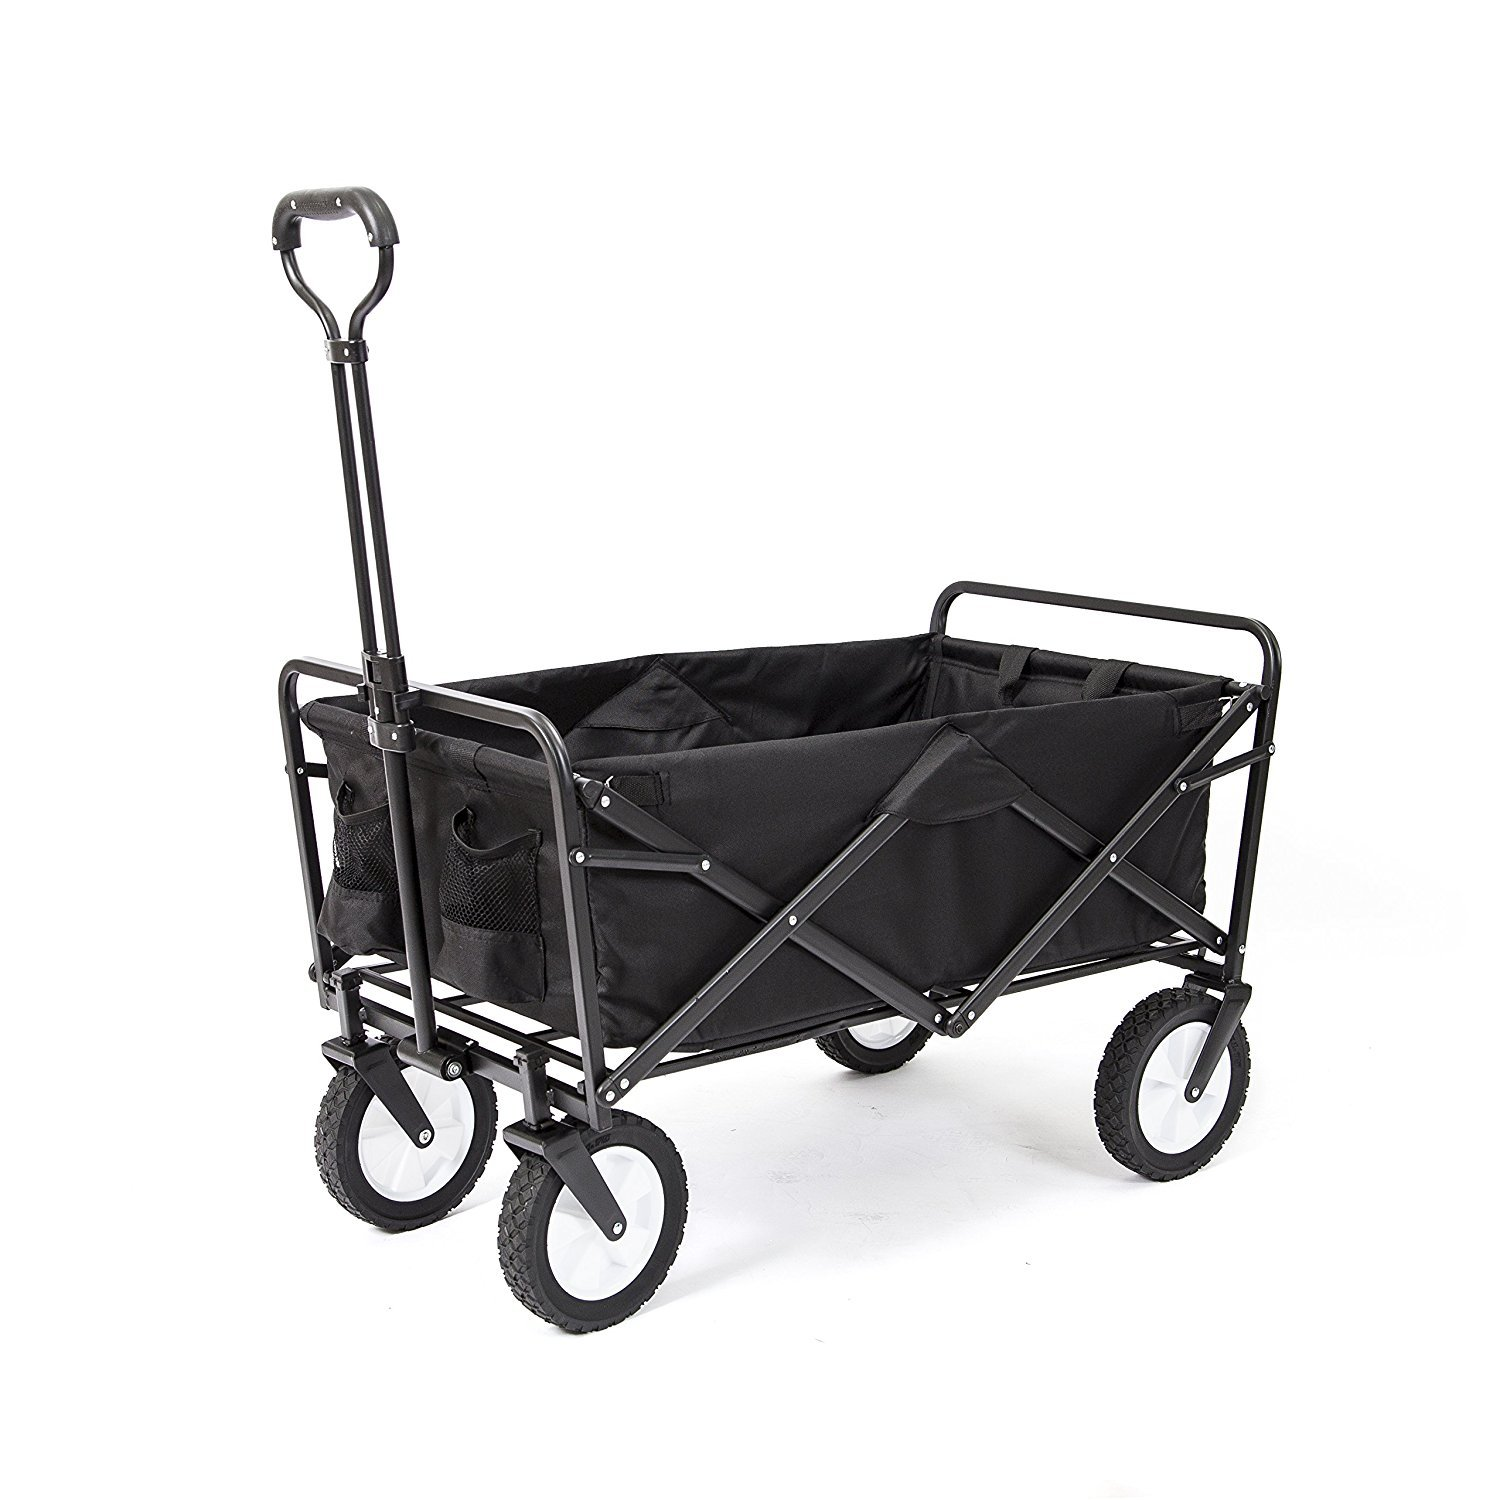 MEDA 40926 Collapsible Folding Outdoor Utility Wagon Cart Black